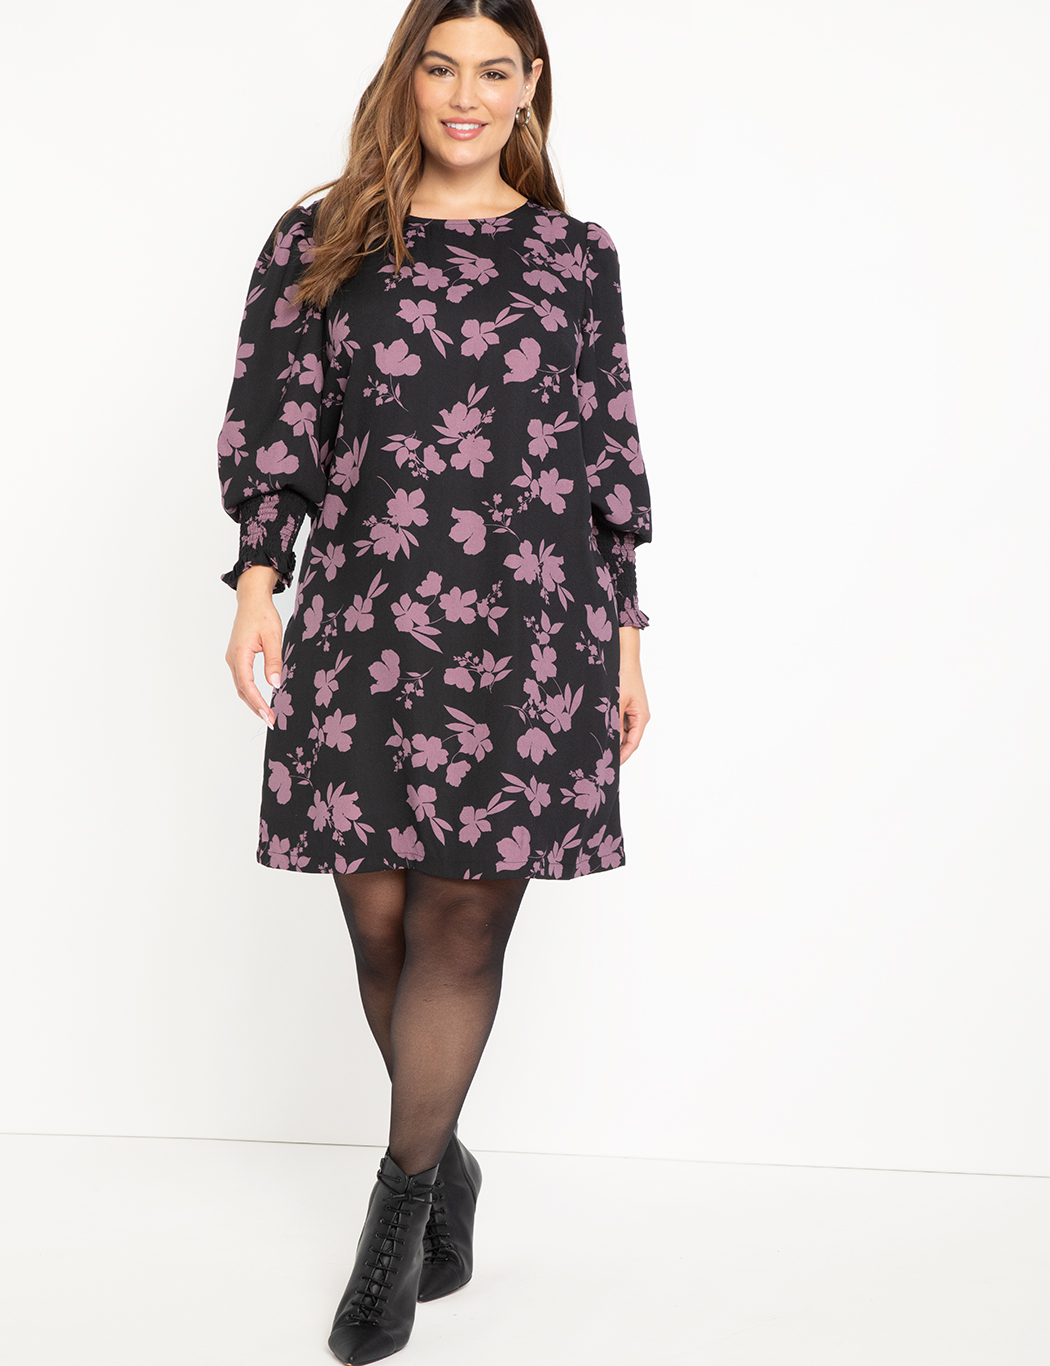 ELOQUII Elements Printed Bishop Sleeve Easy Dress Sweatpea Silhouette